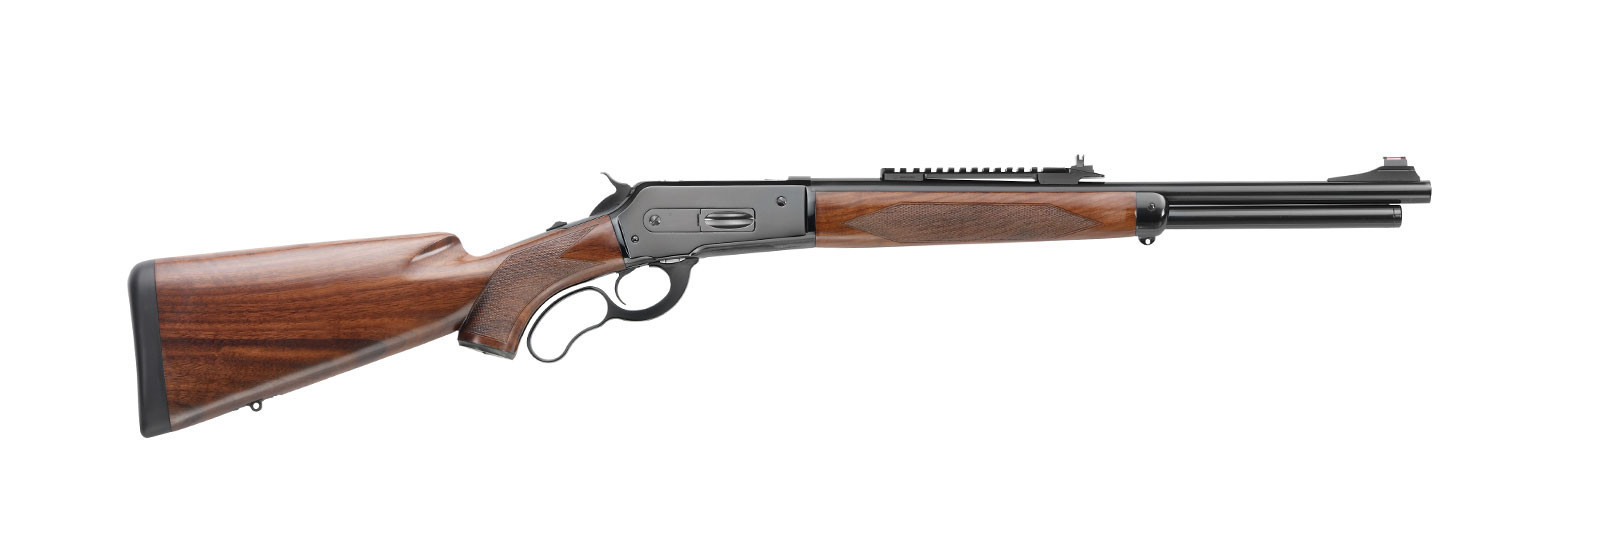 86/71 lever action boarbuster .444